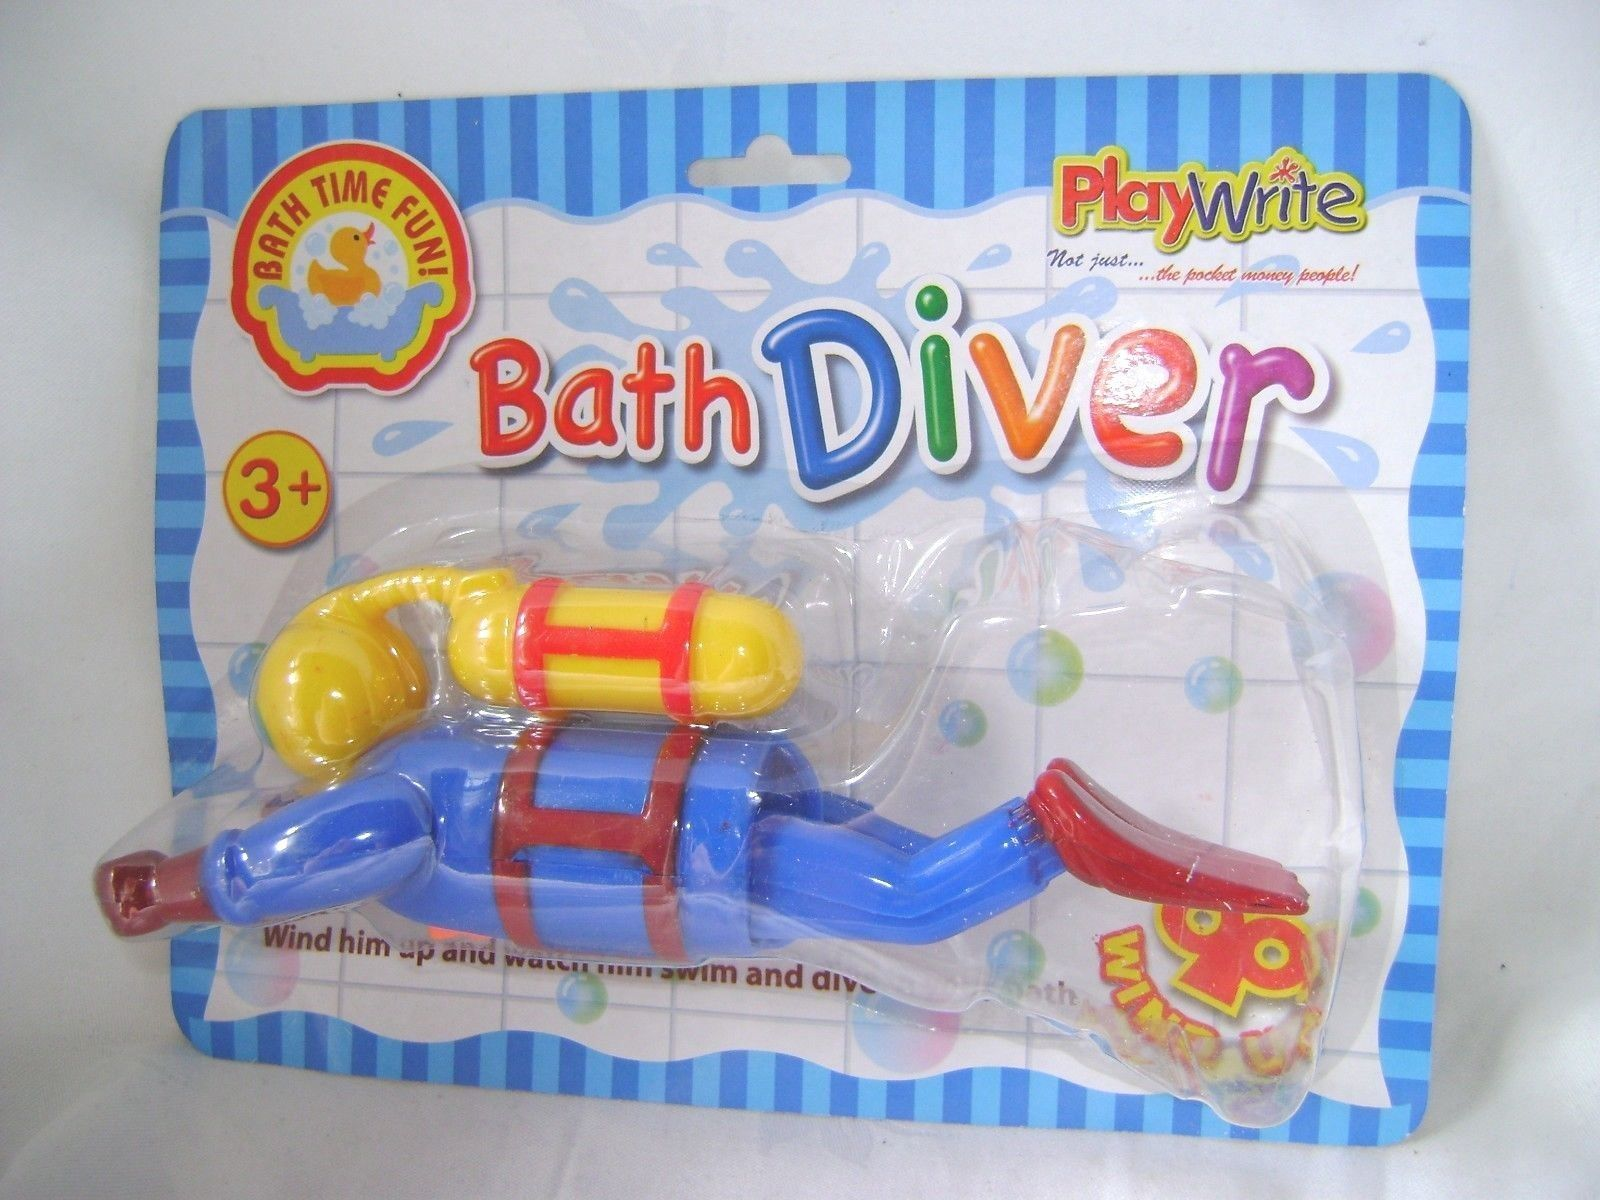 New wind up swimming bath toy #scuba diver #bathtime #toddlers ...